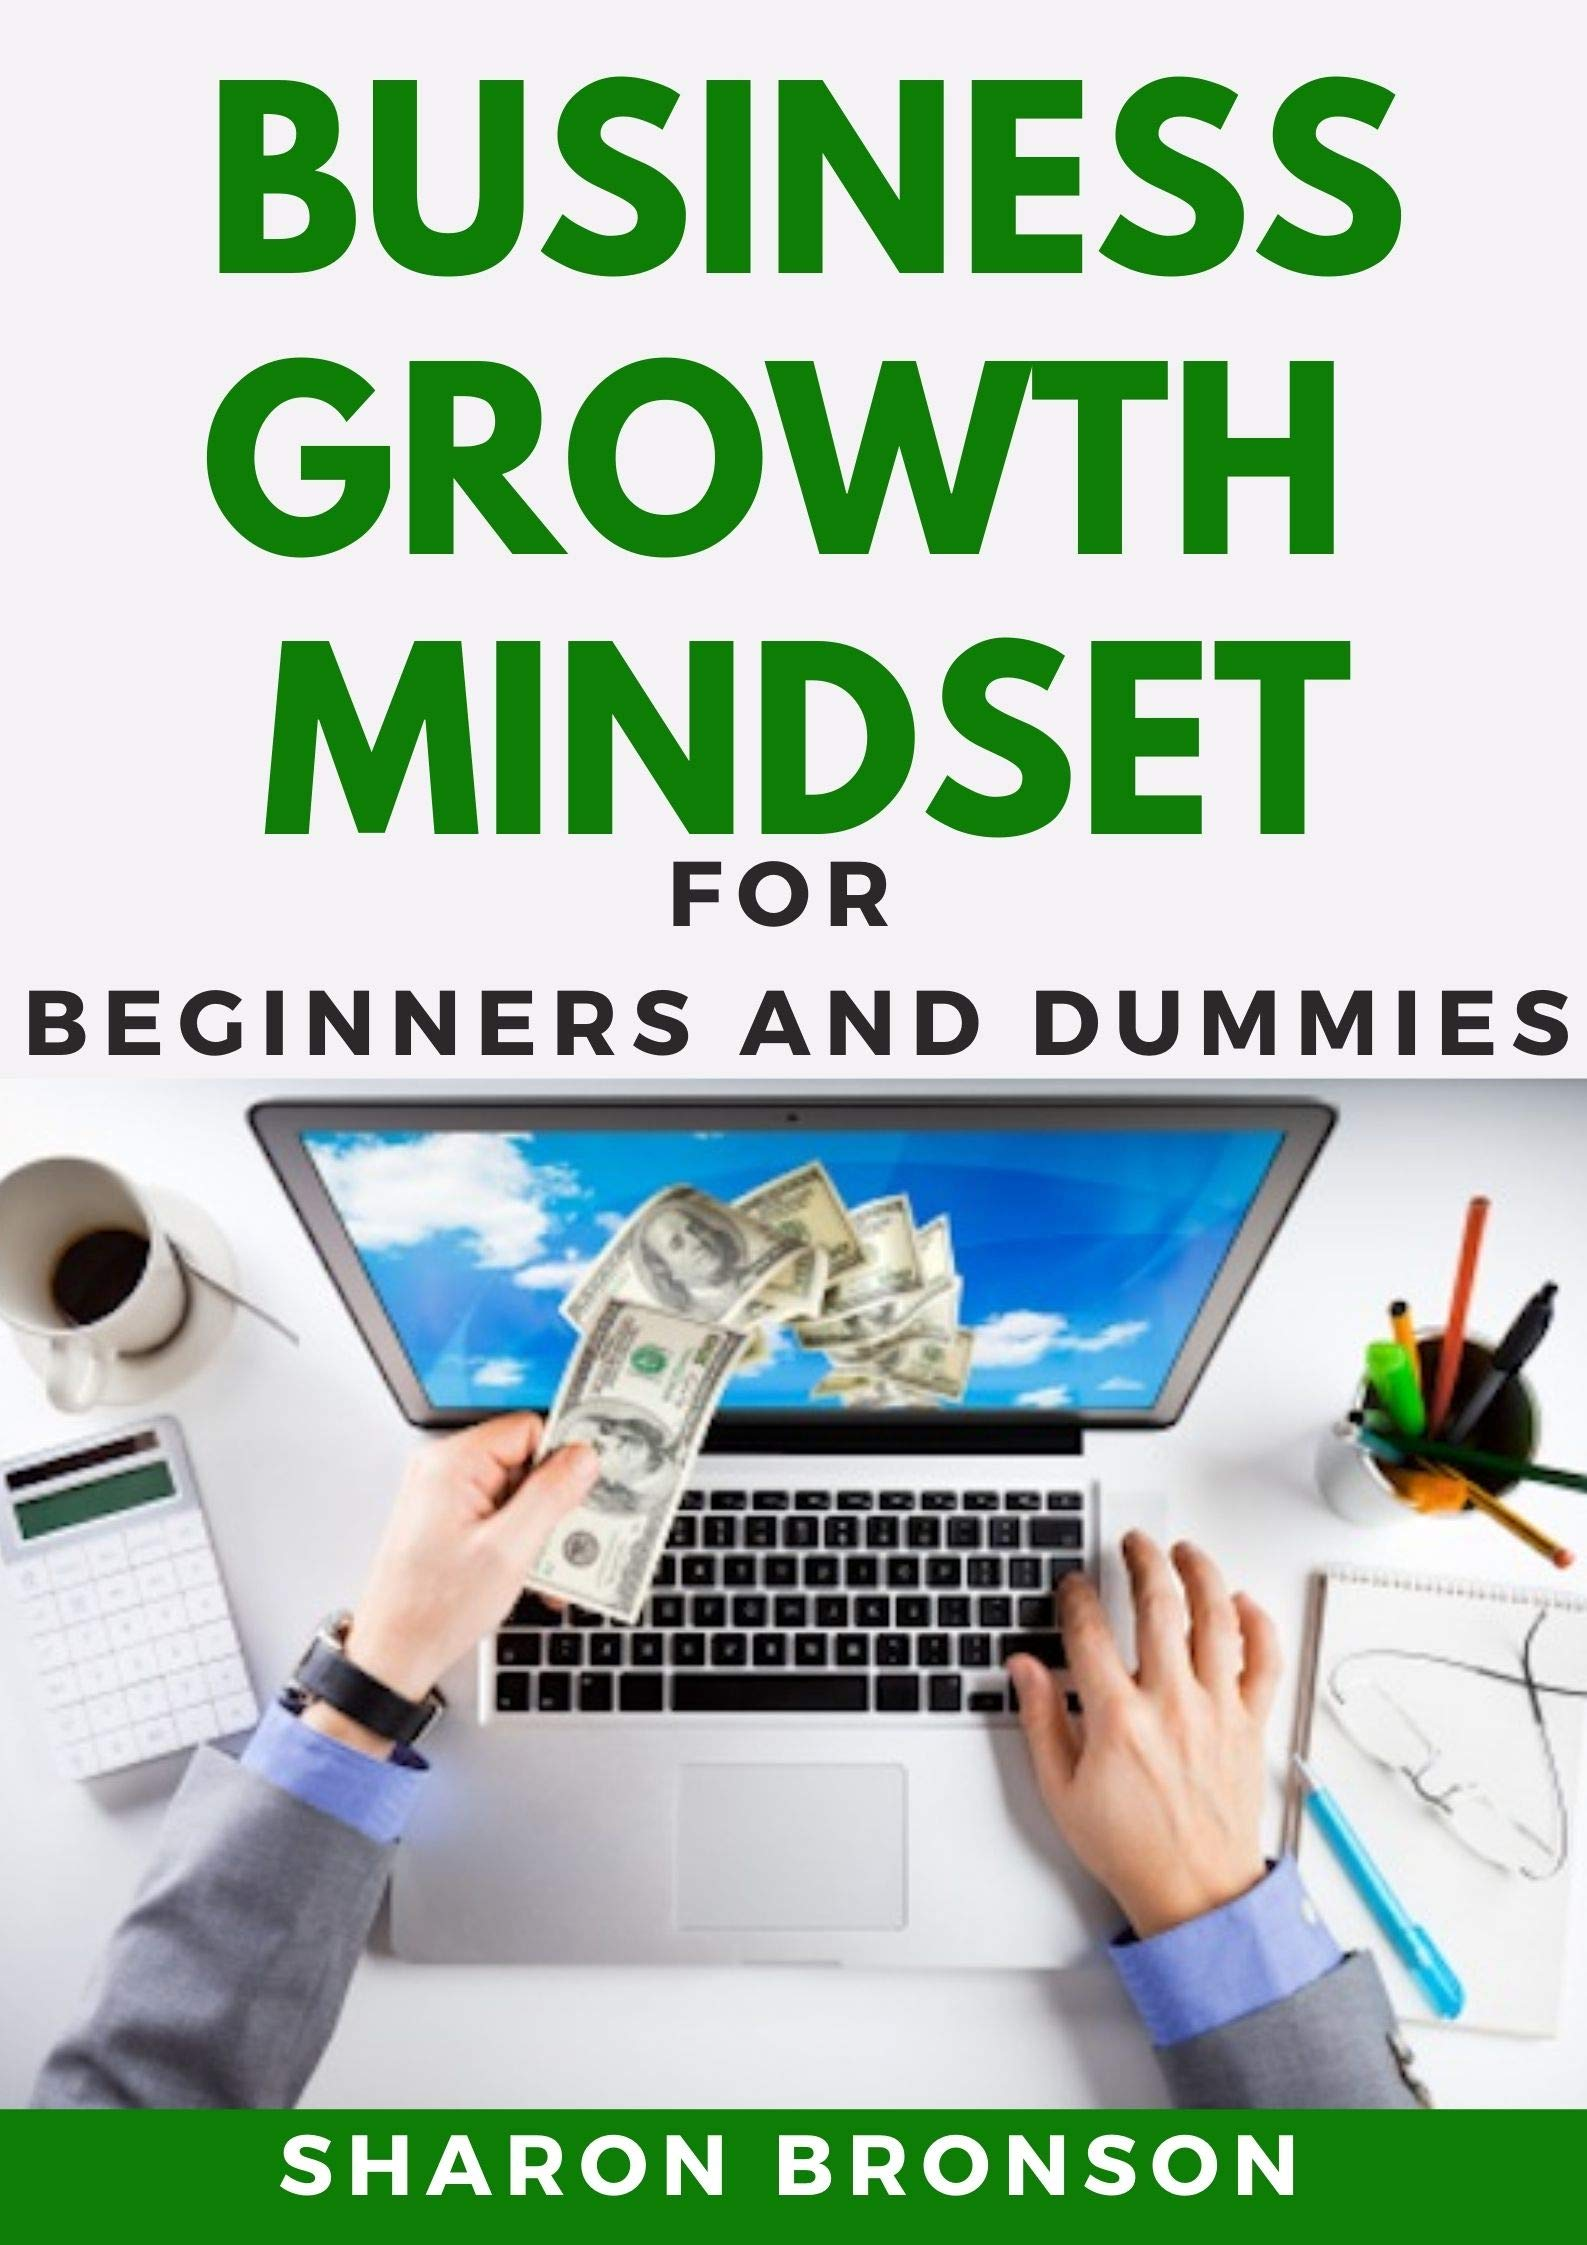 Business Growth Mindset For Beginners And Dummies: Basic Guide To Business Growth Mindset